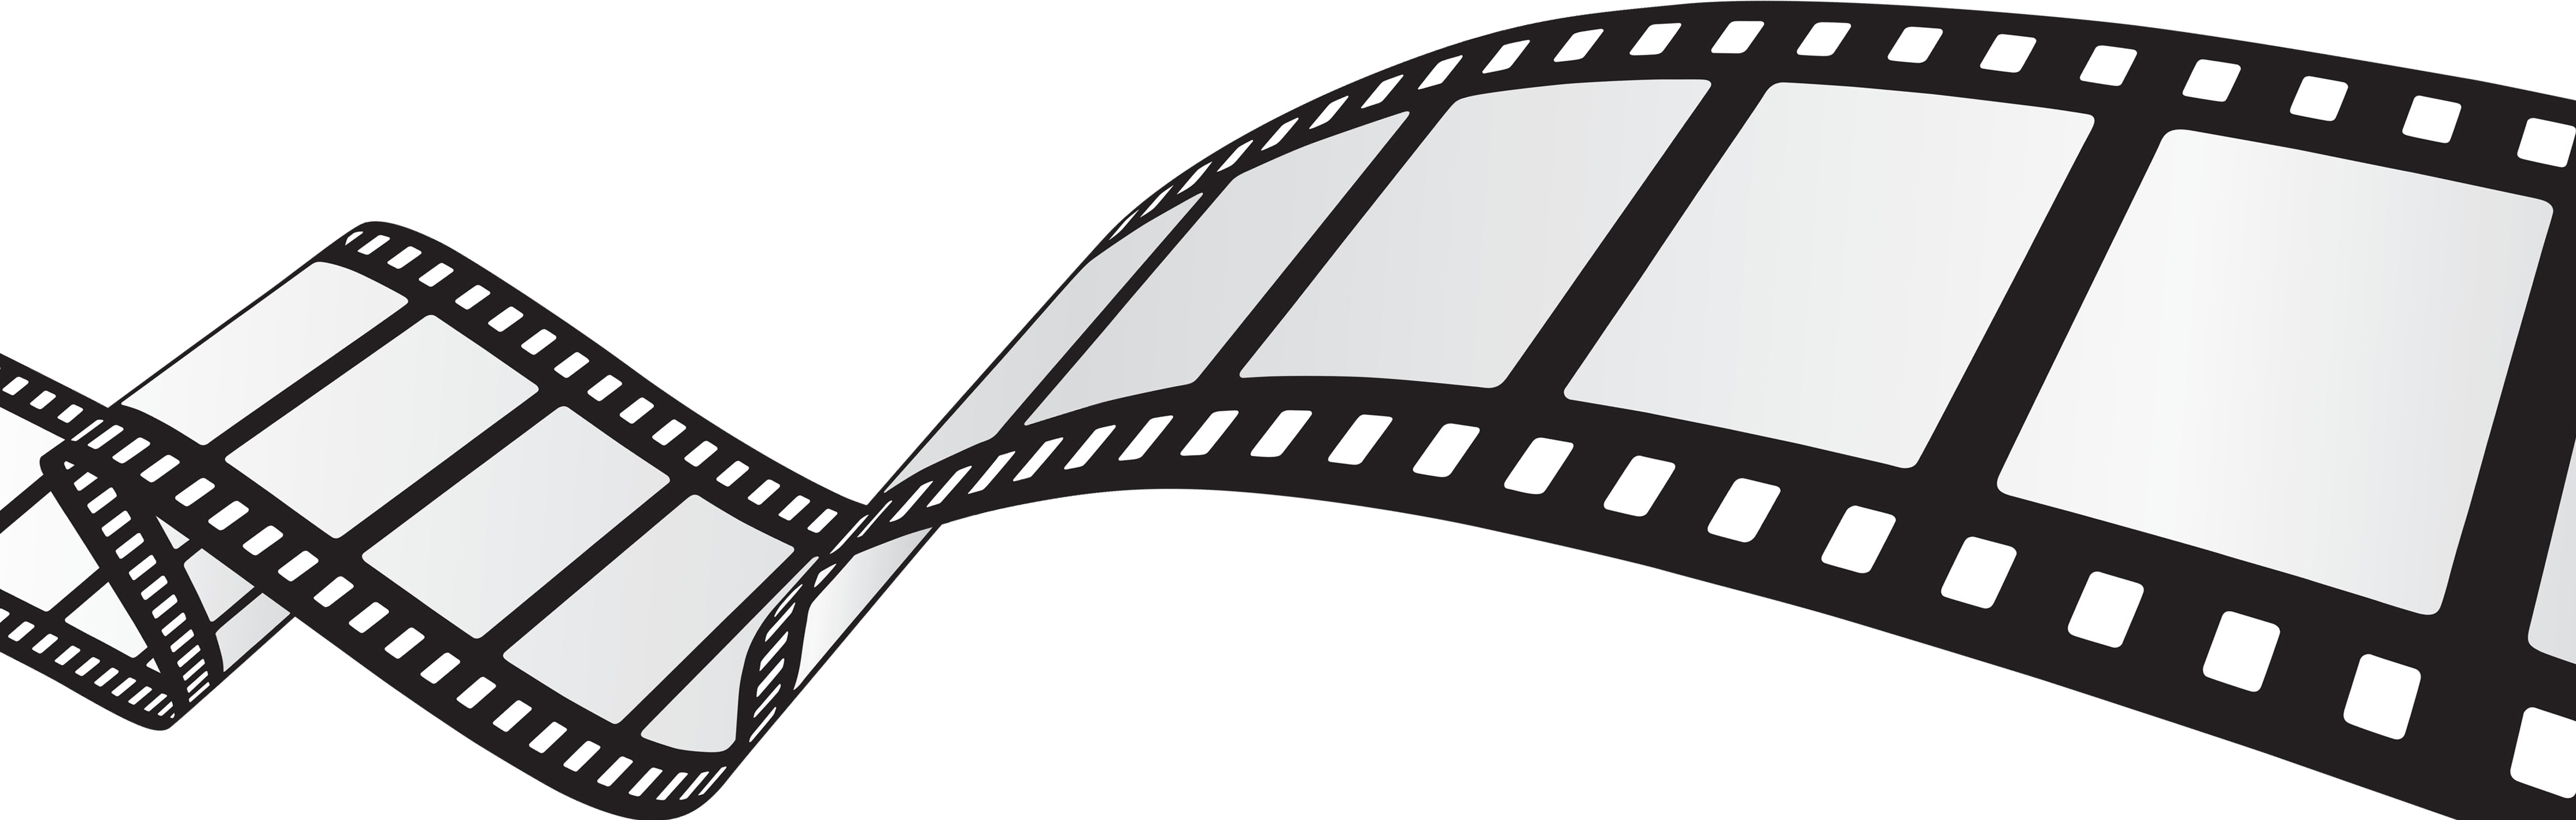 Motion picture film clipart